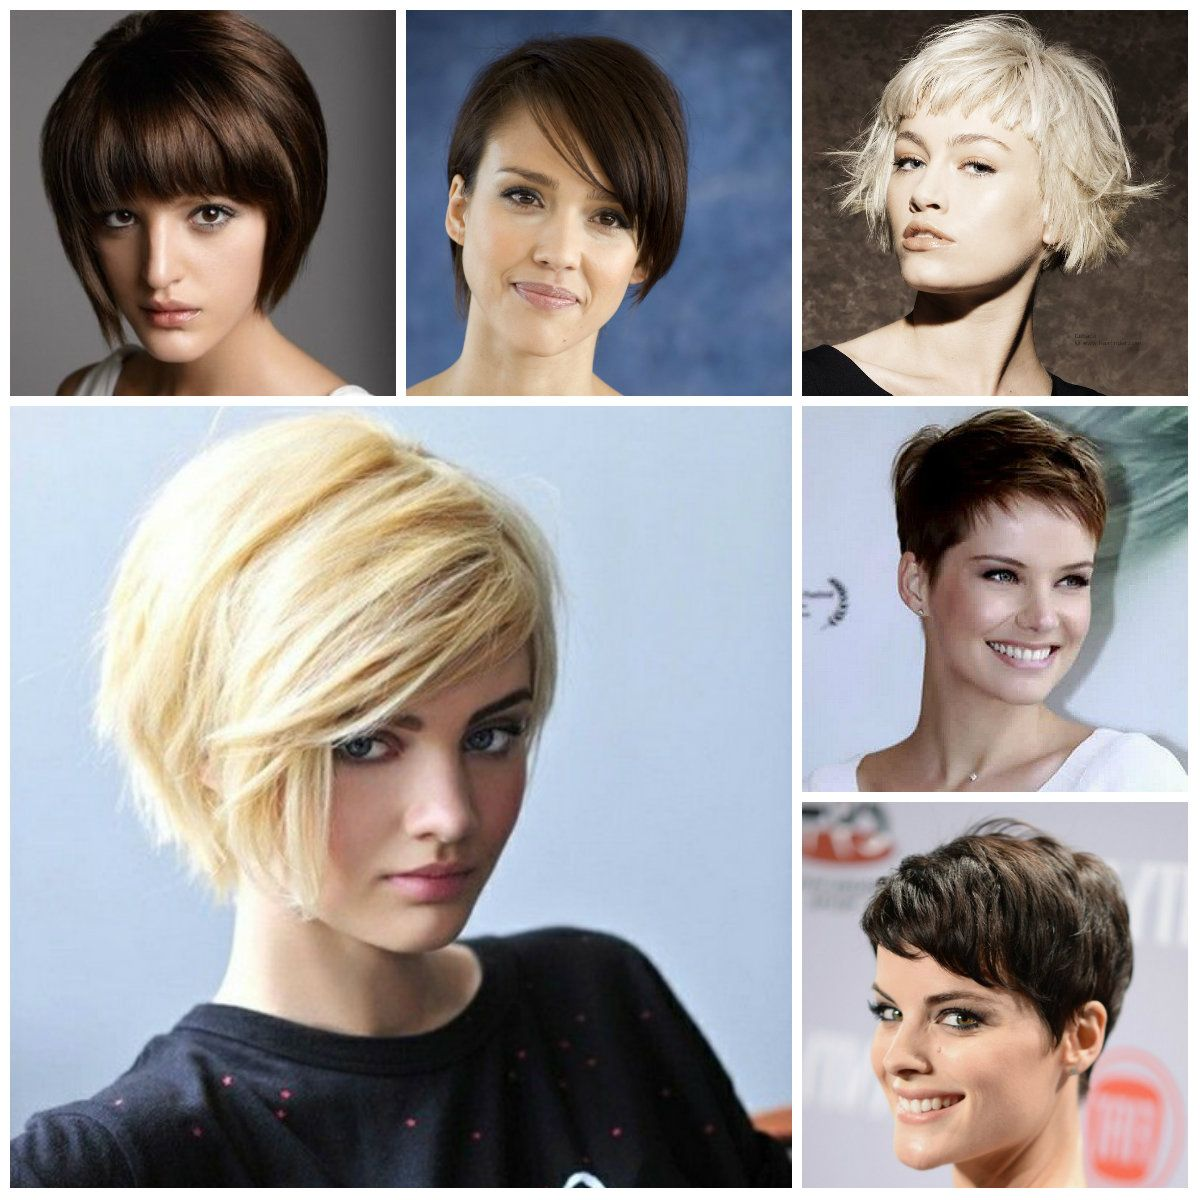 Hair Styles With Bangs For Short Hair Short Hairstyles - 2016 trendy short haircuts with bangs haircuts hairstyles 2016 and hair colors for short